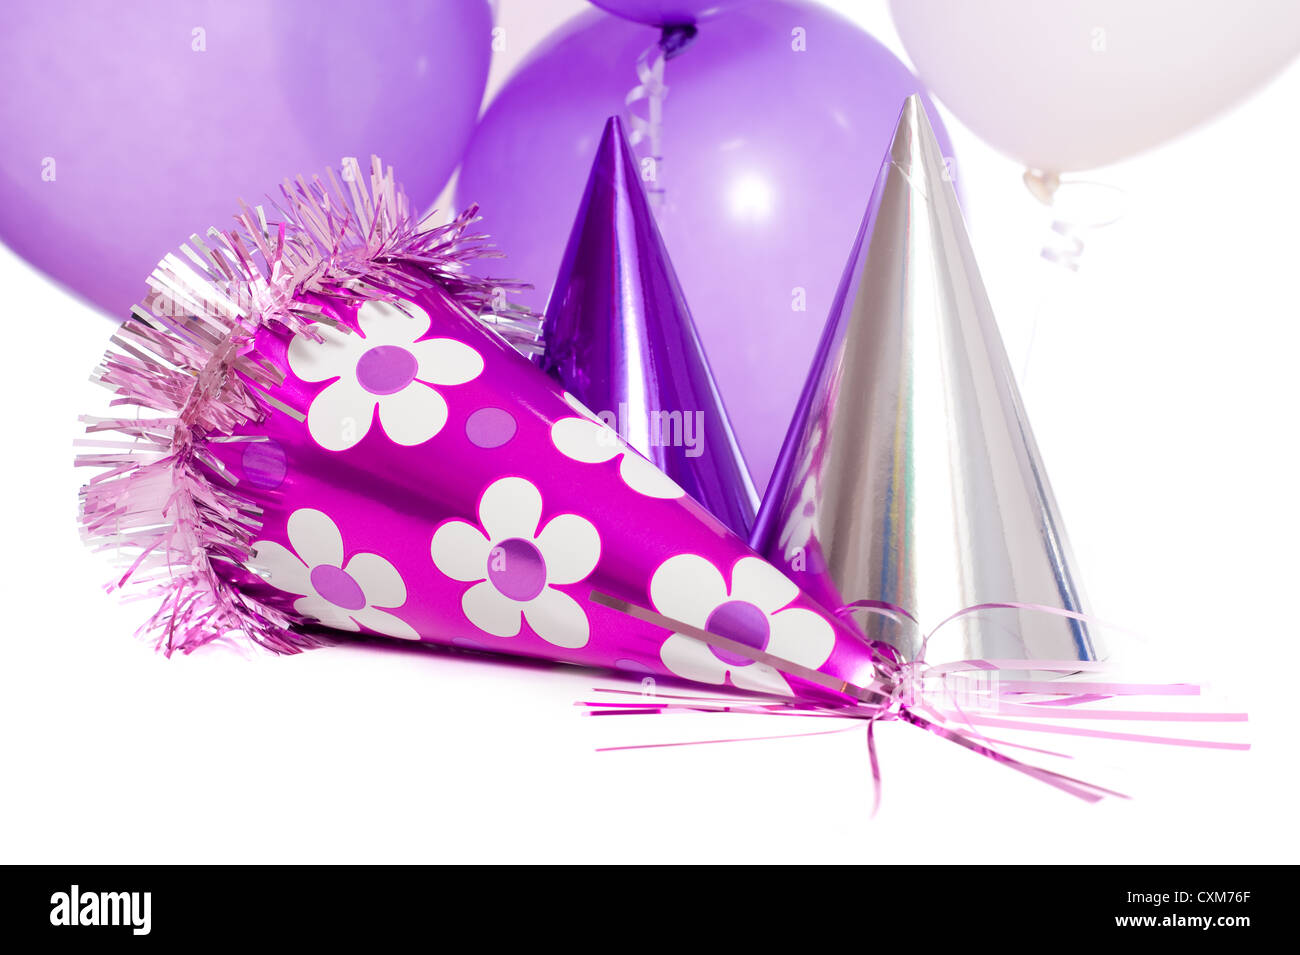 Birthday Party Background With Hats And Floating Balloons On A White